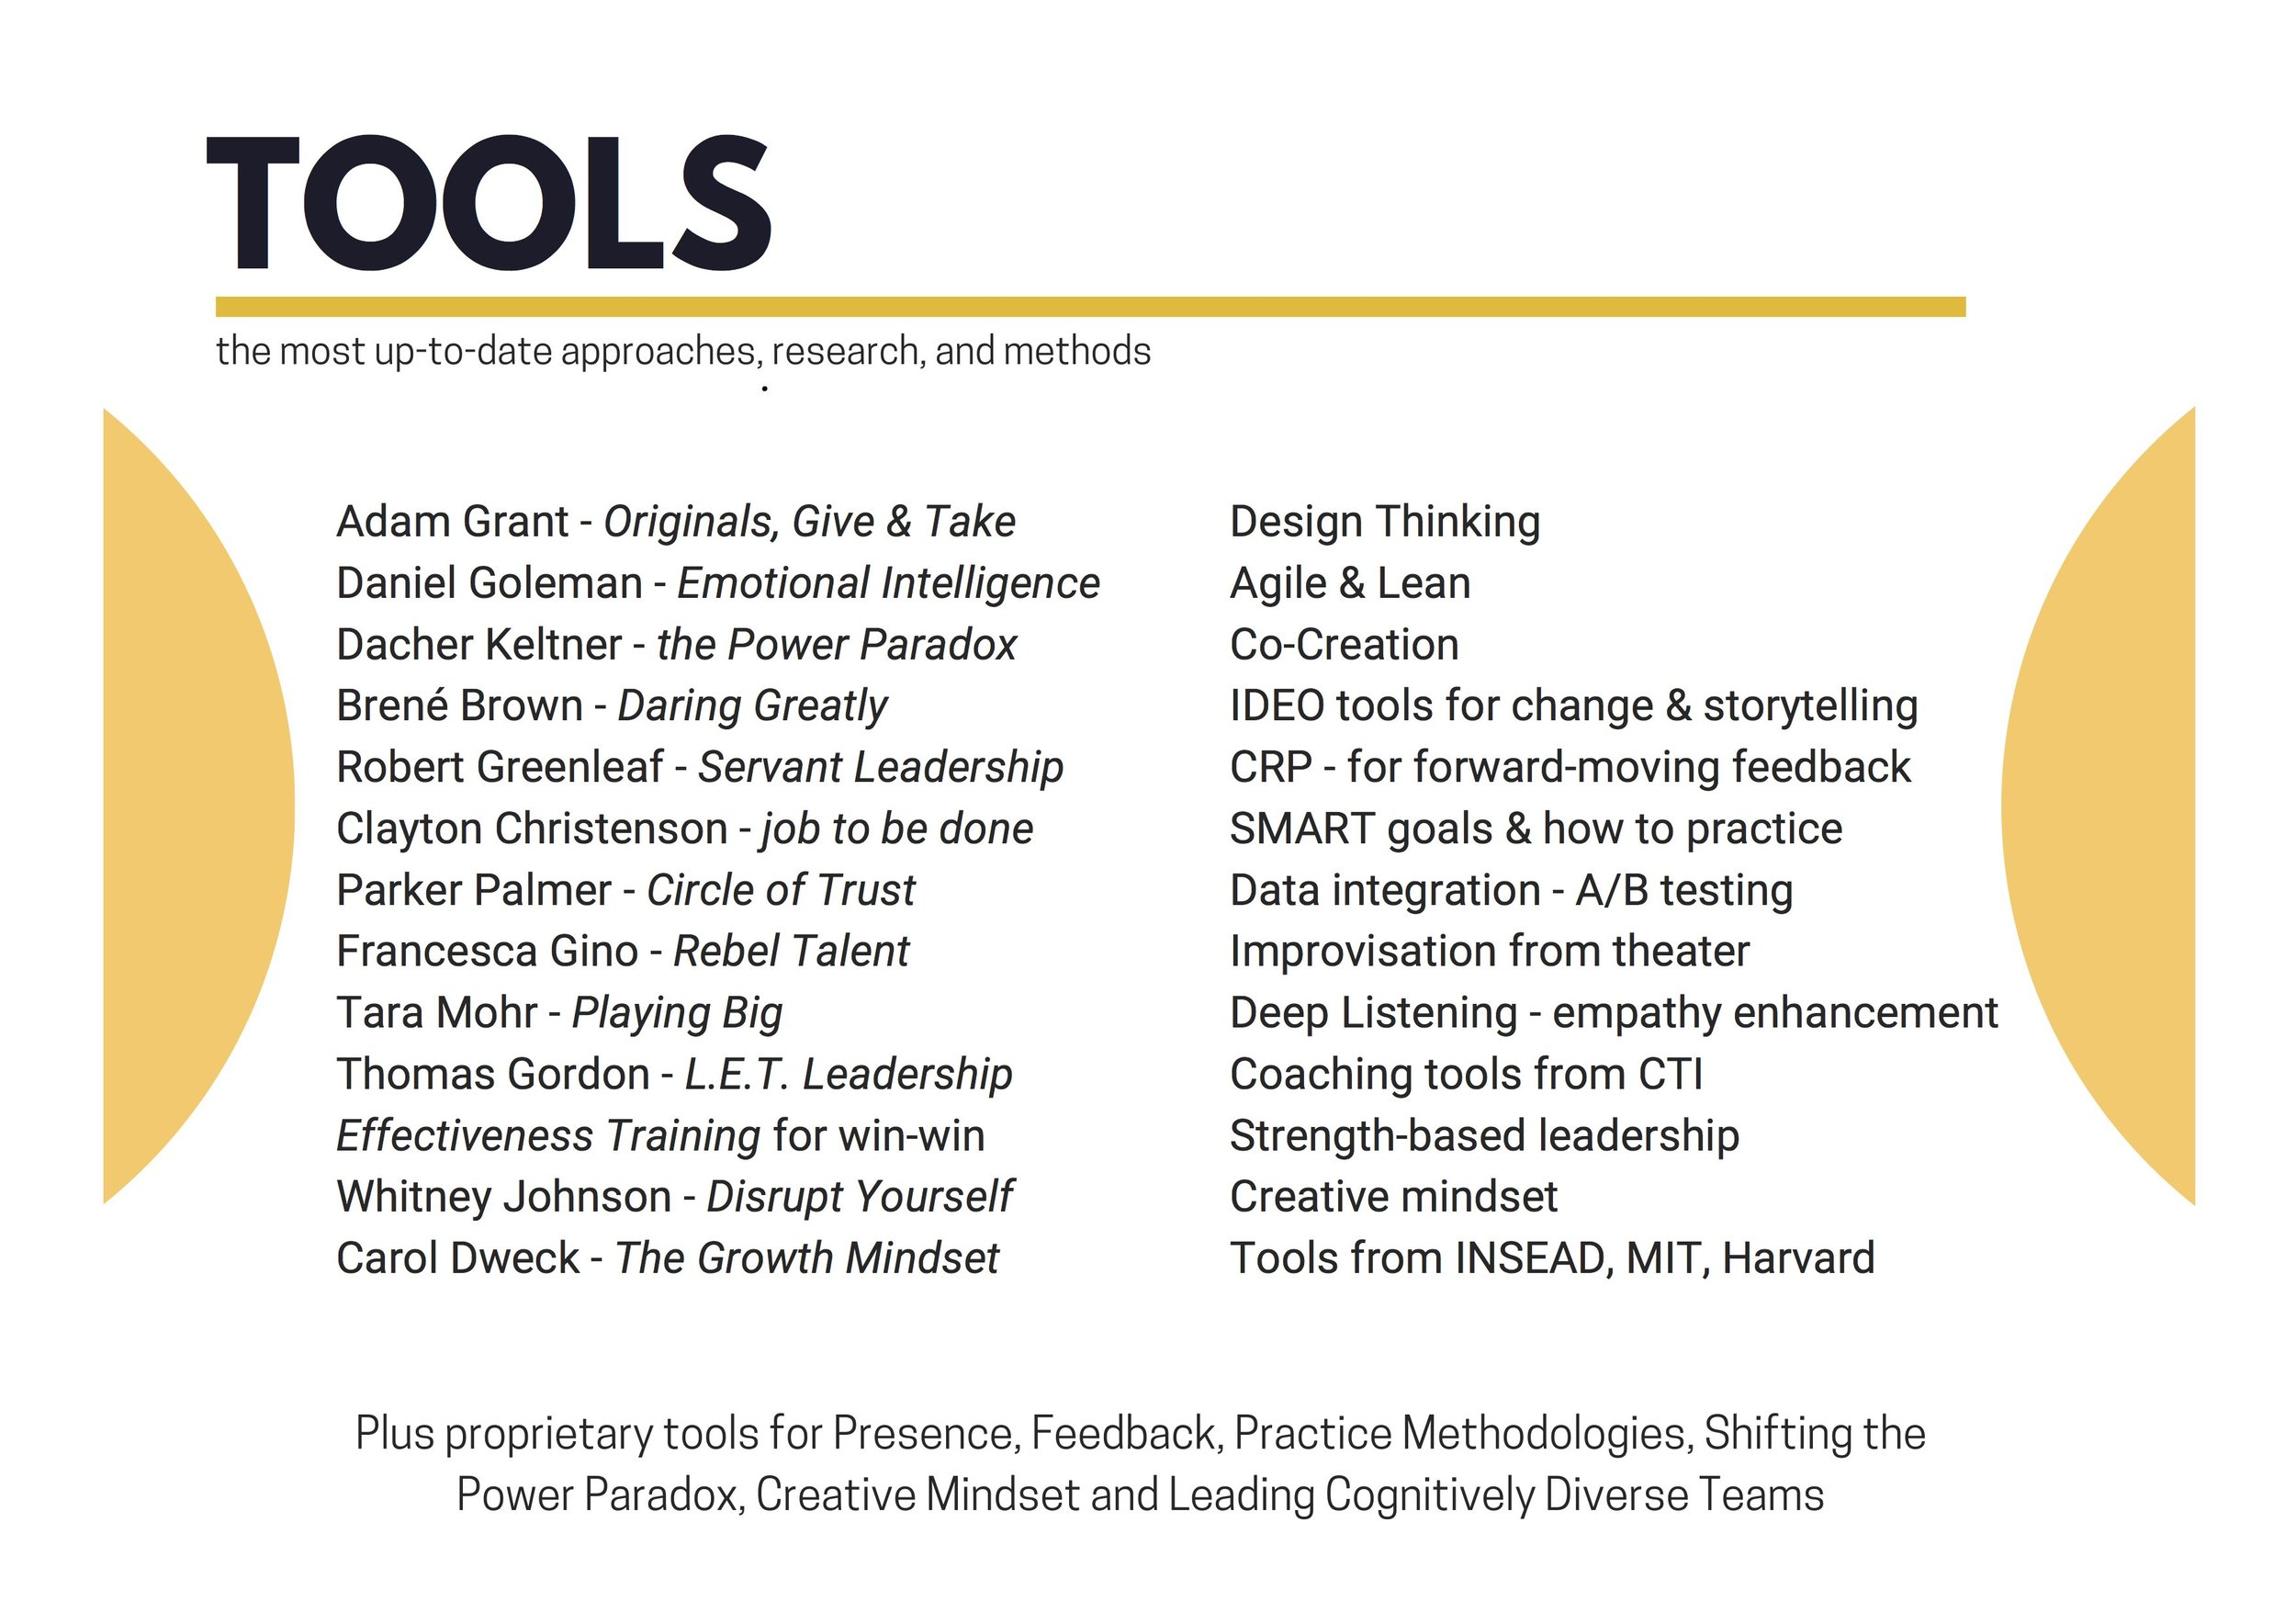 leadership tools - here's a summary of tools and methodologies I apply, facilitate or curate in designing leadership development programs